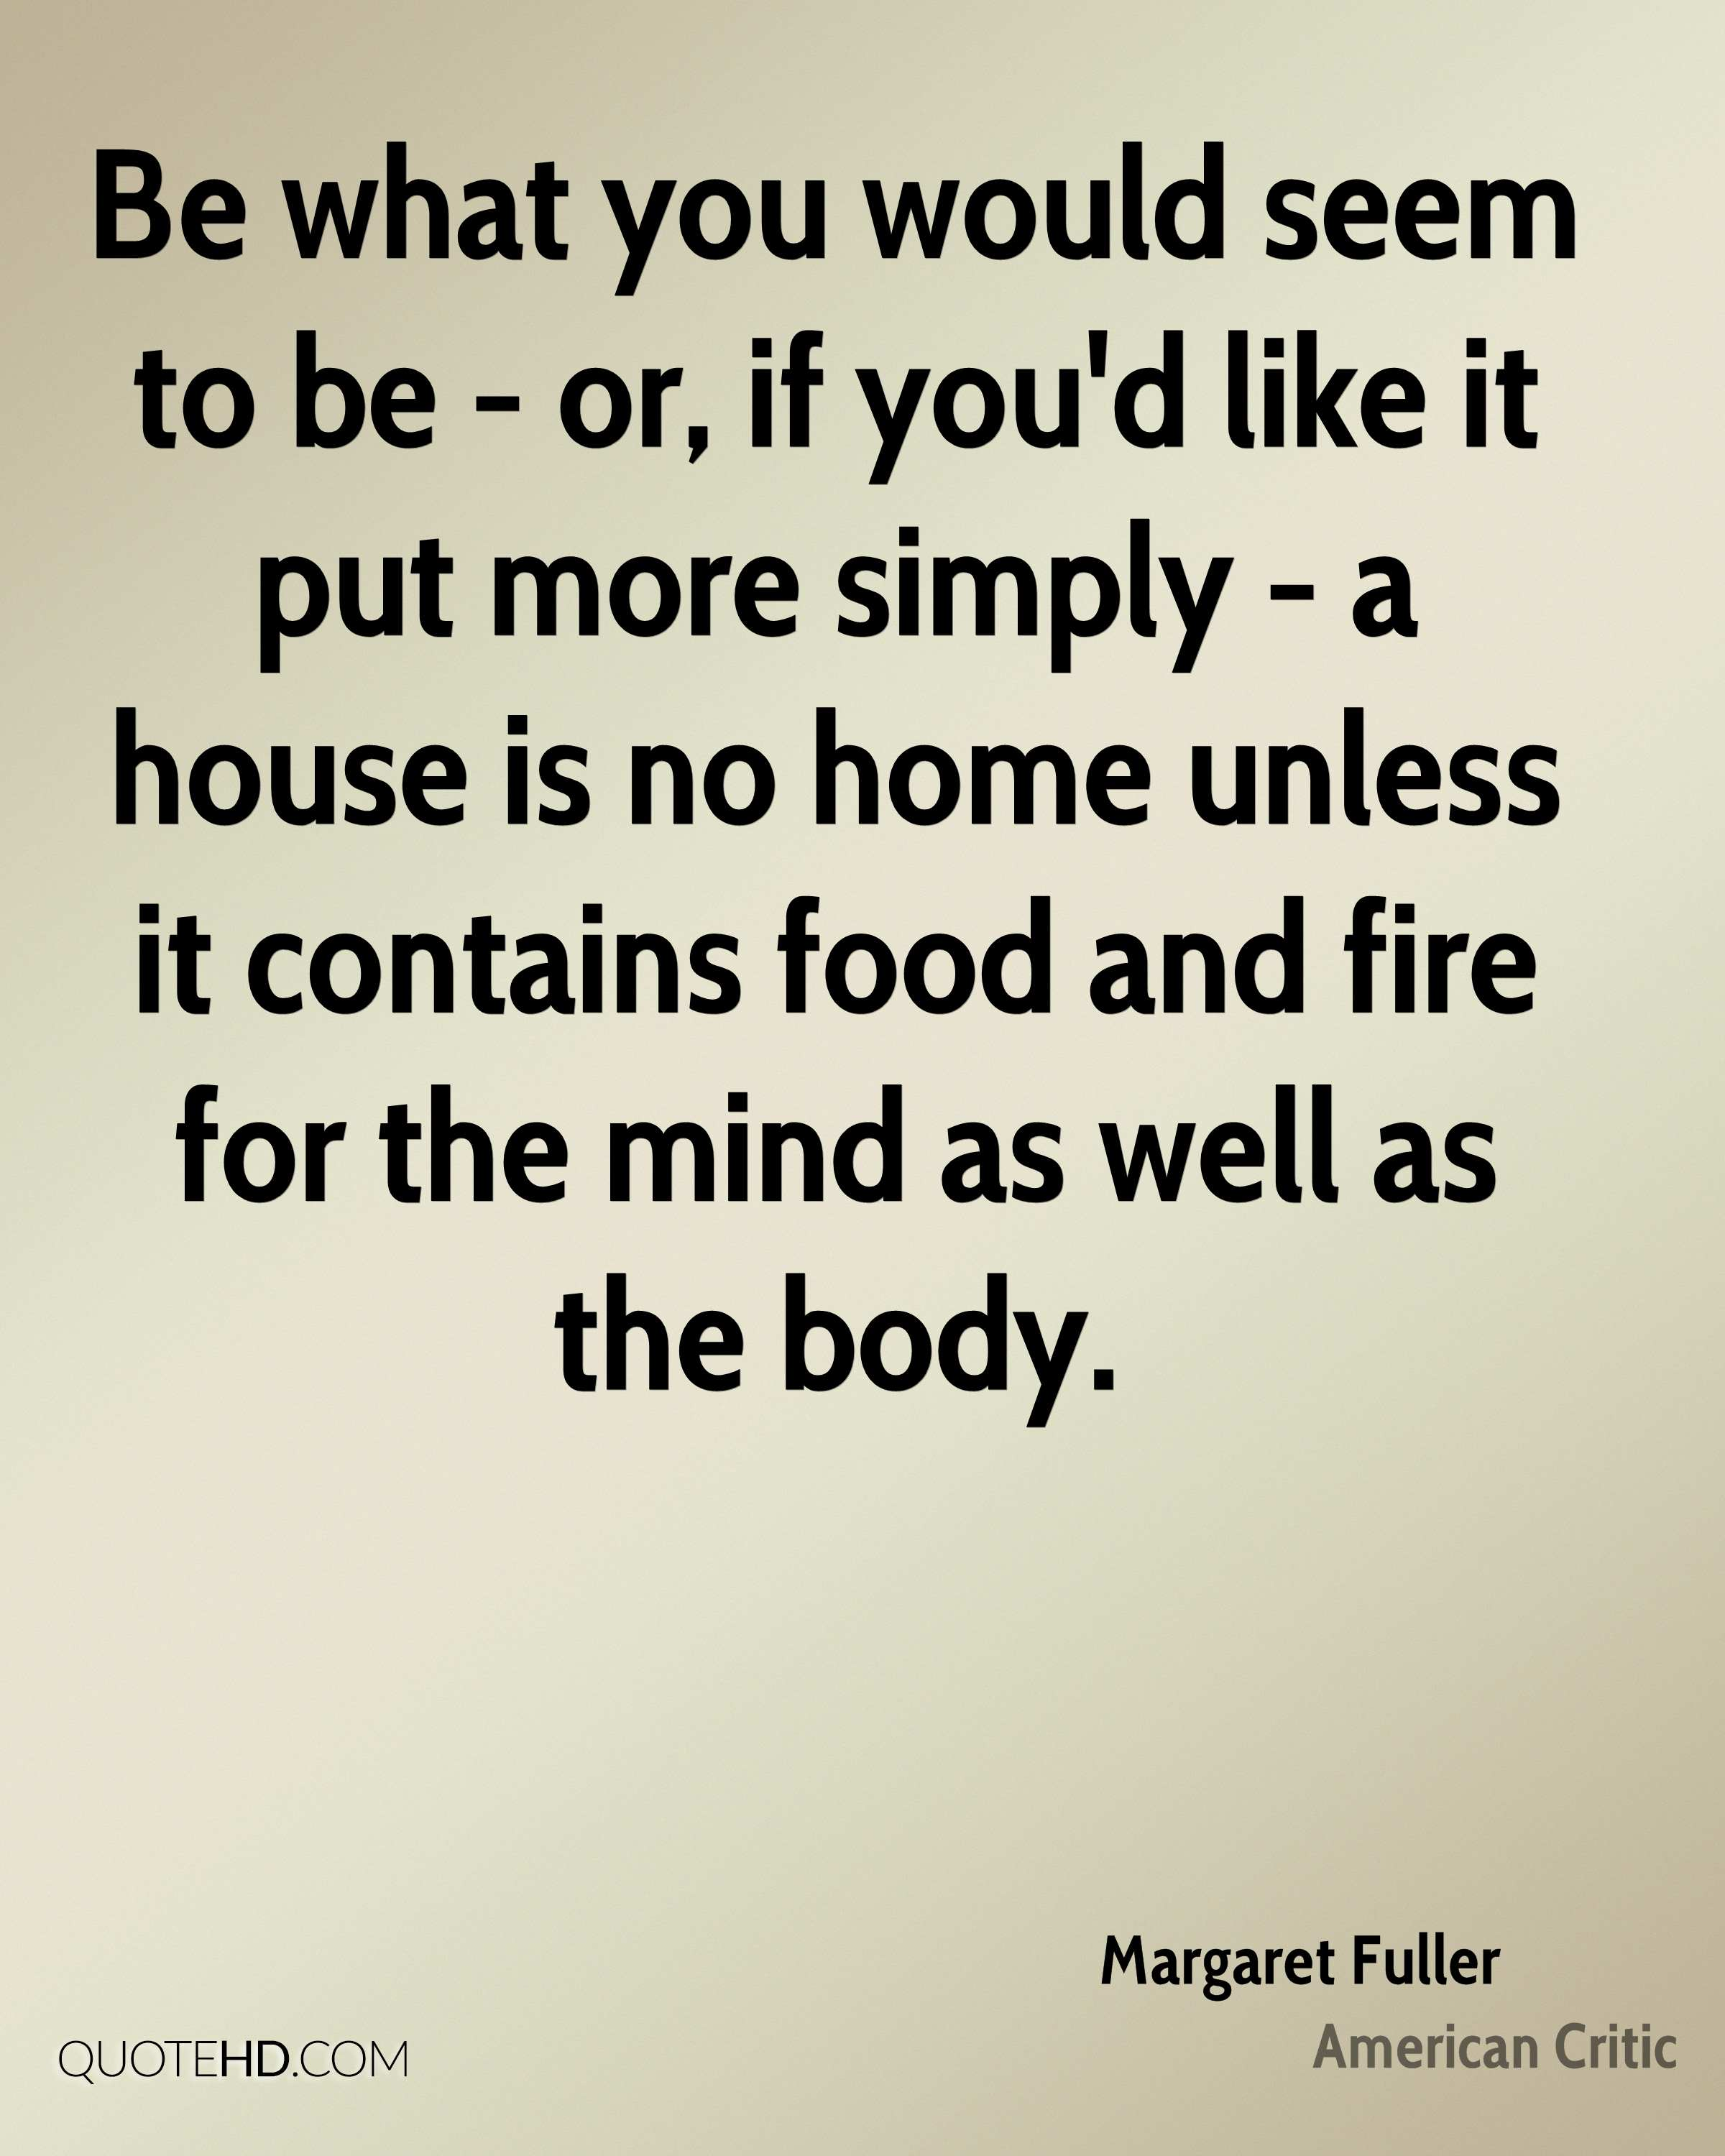 Be what you would seem to be - or, if you'd like it put more simply - a house is no home unless it contains food and fire for the mind as well as the body.